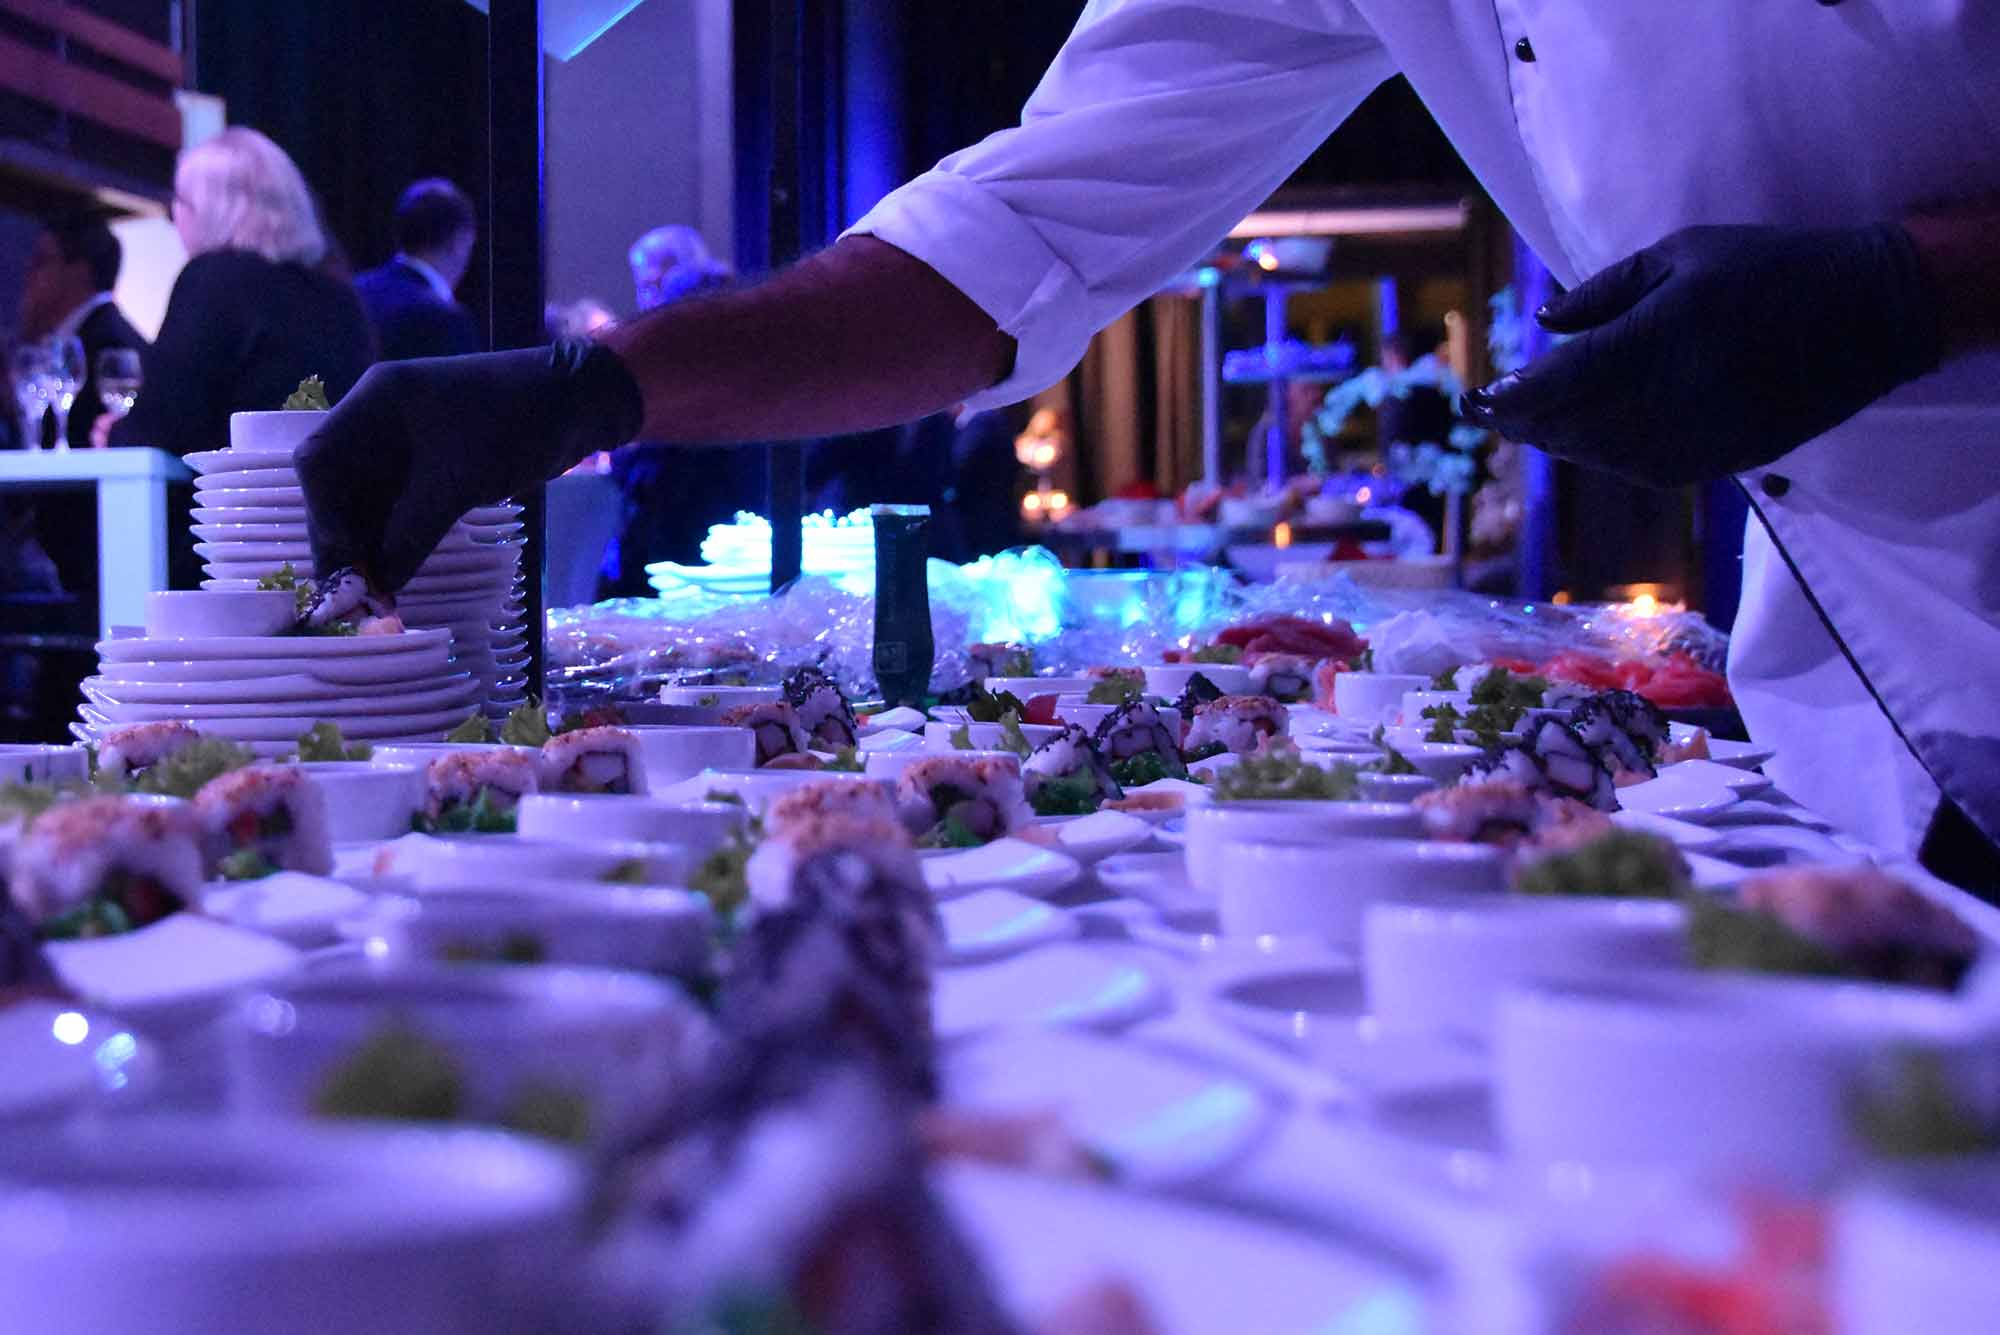 header-catering-26-eventcateirng-meee-event-generalunternehmer-generalunternehmung-agentur-catering-events-firmenevent-corporate-eventlocation-zuerich-schweiz